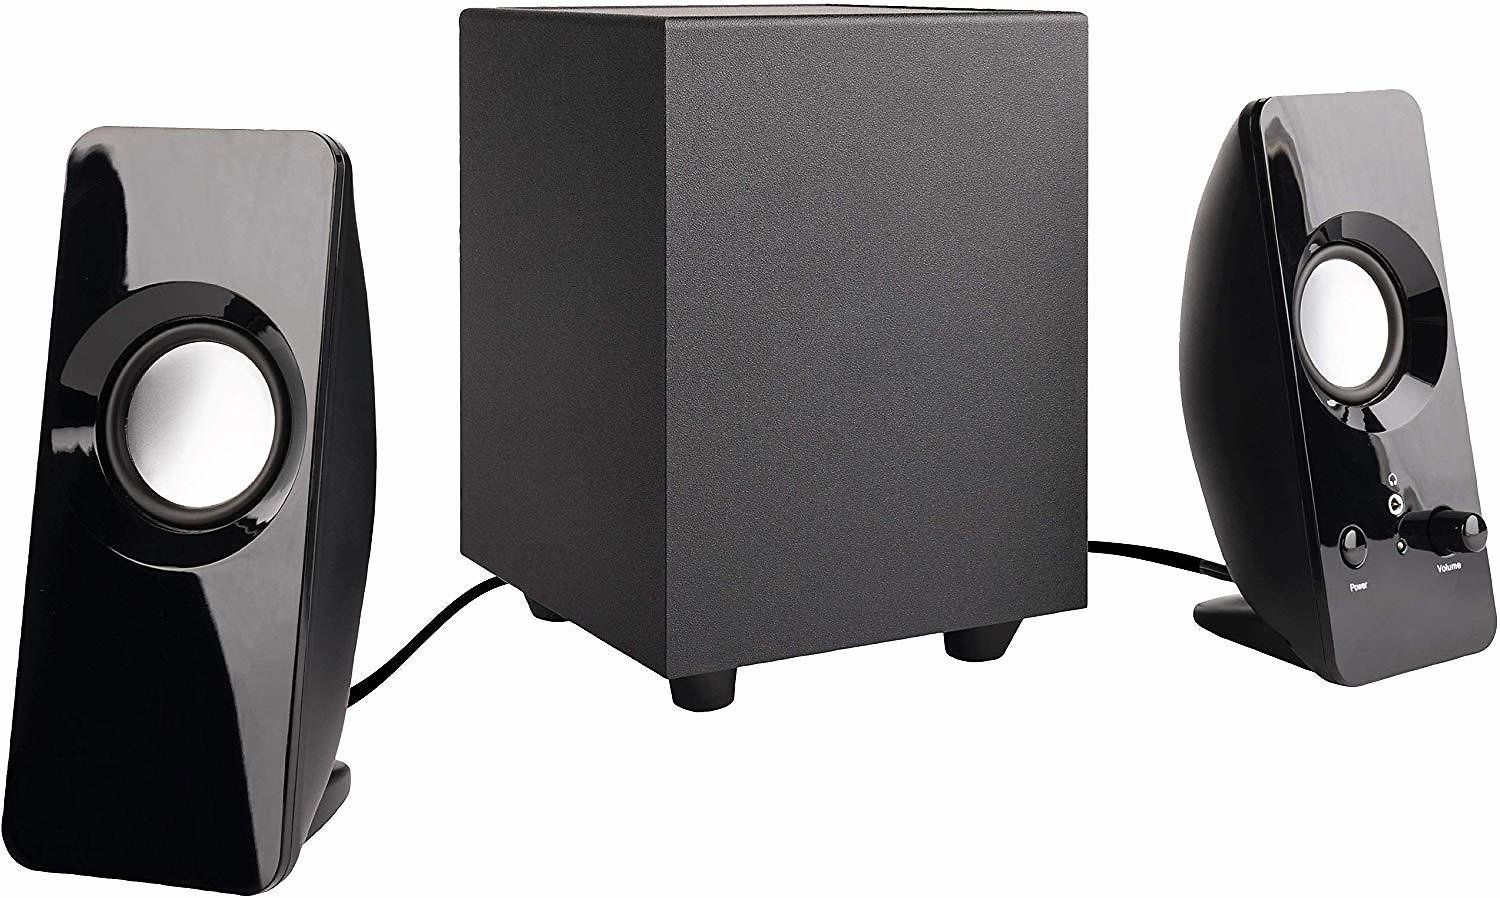 AmazonBasics AC-2.1A 2.1 8W Computer Speakers with Subwoofer